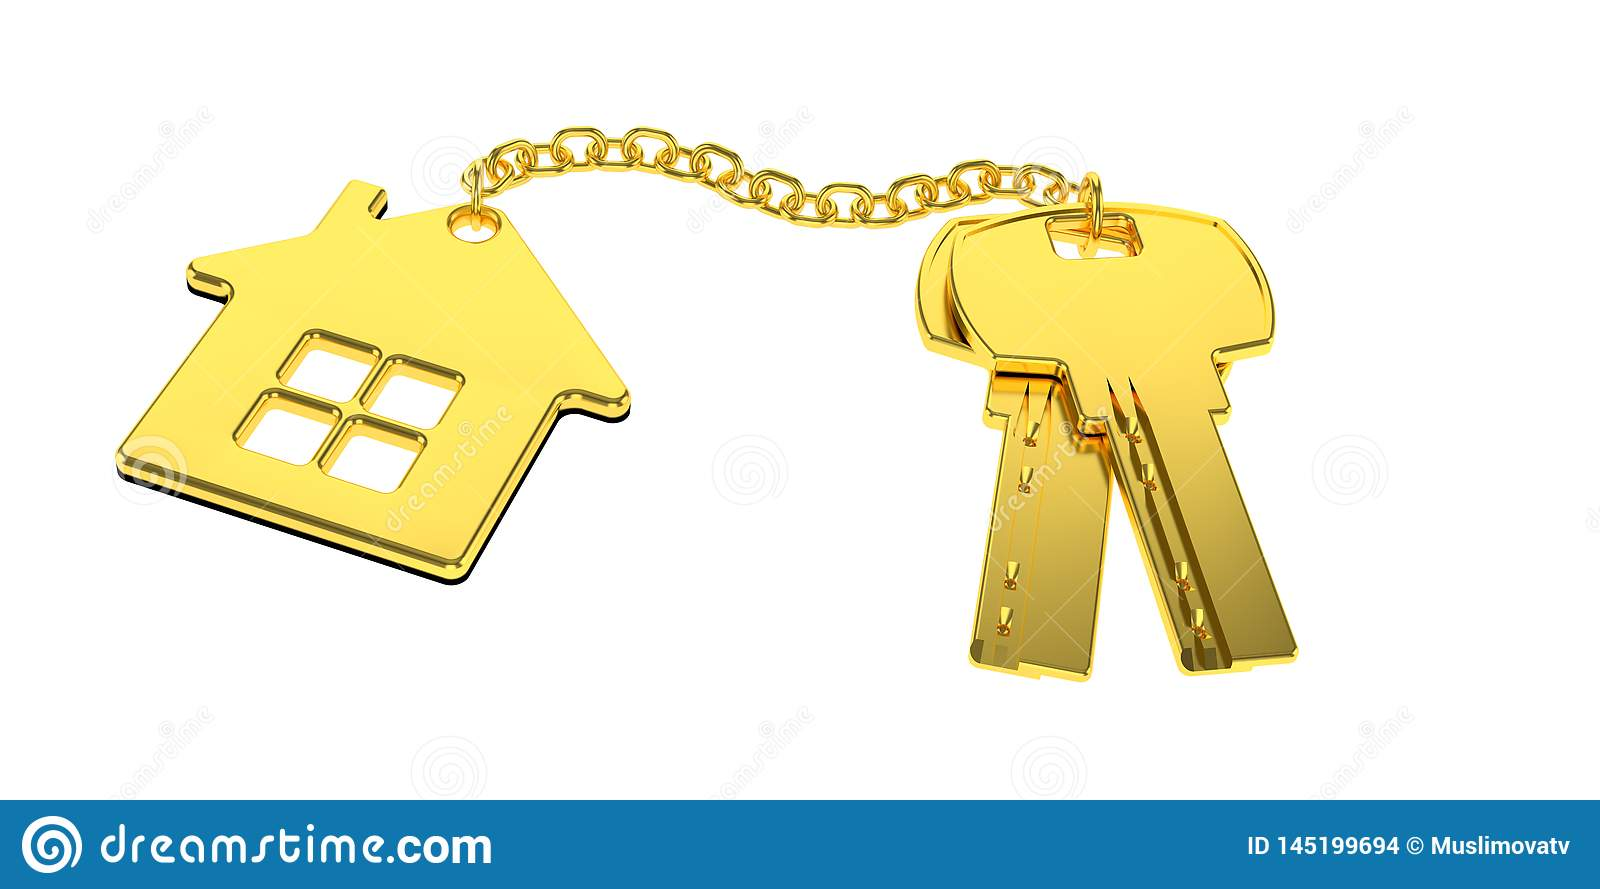 Golden house keys with golden trinket house isolated on white background. new home concept. Real estate. 3d rendering